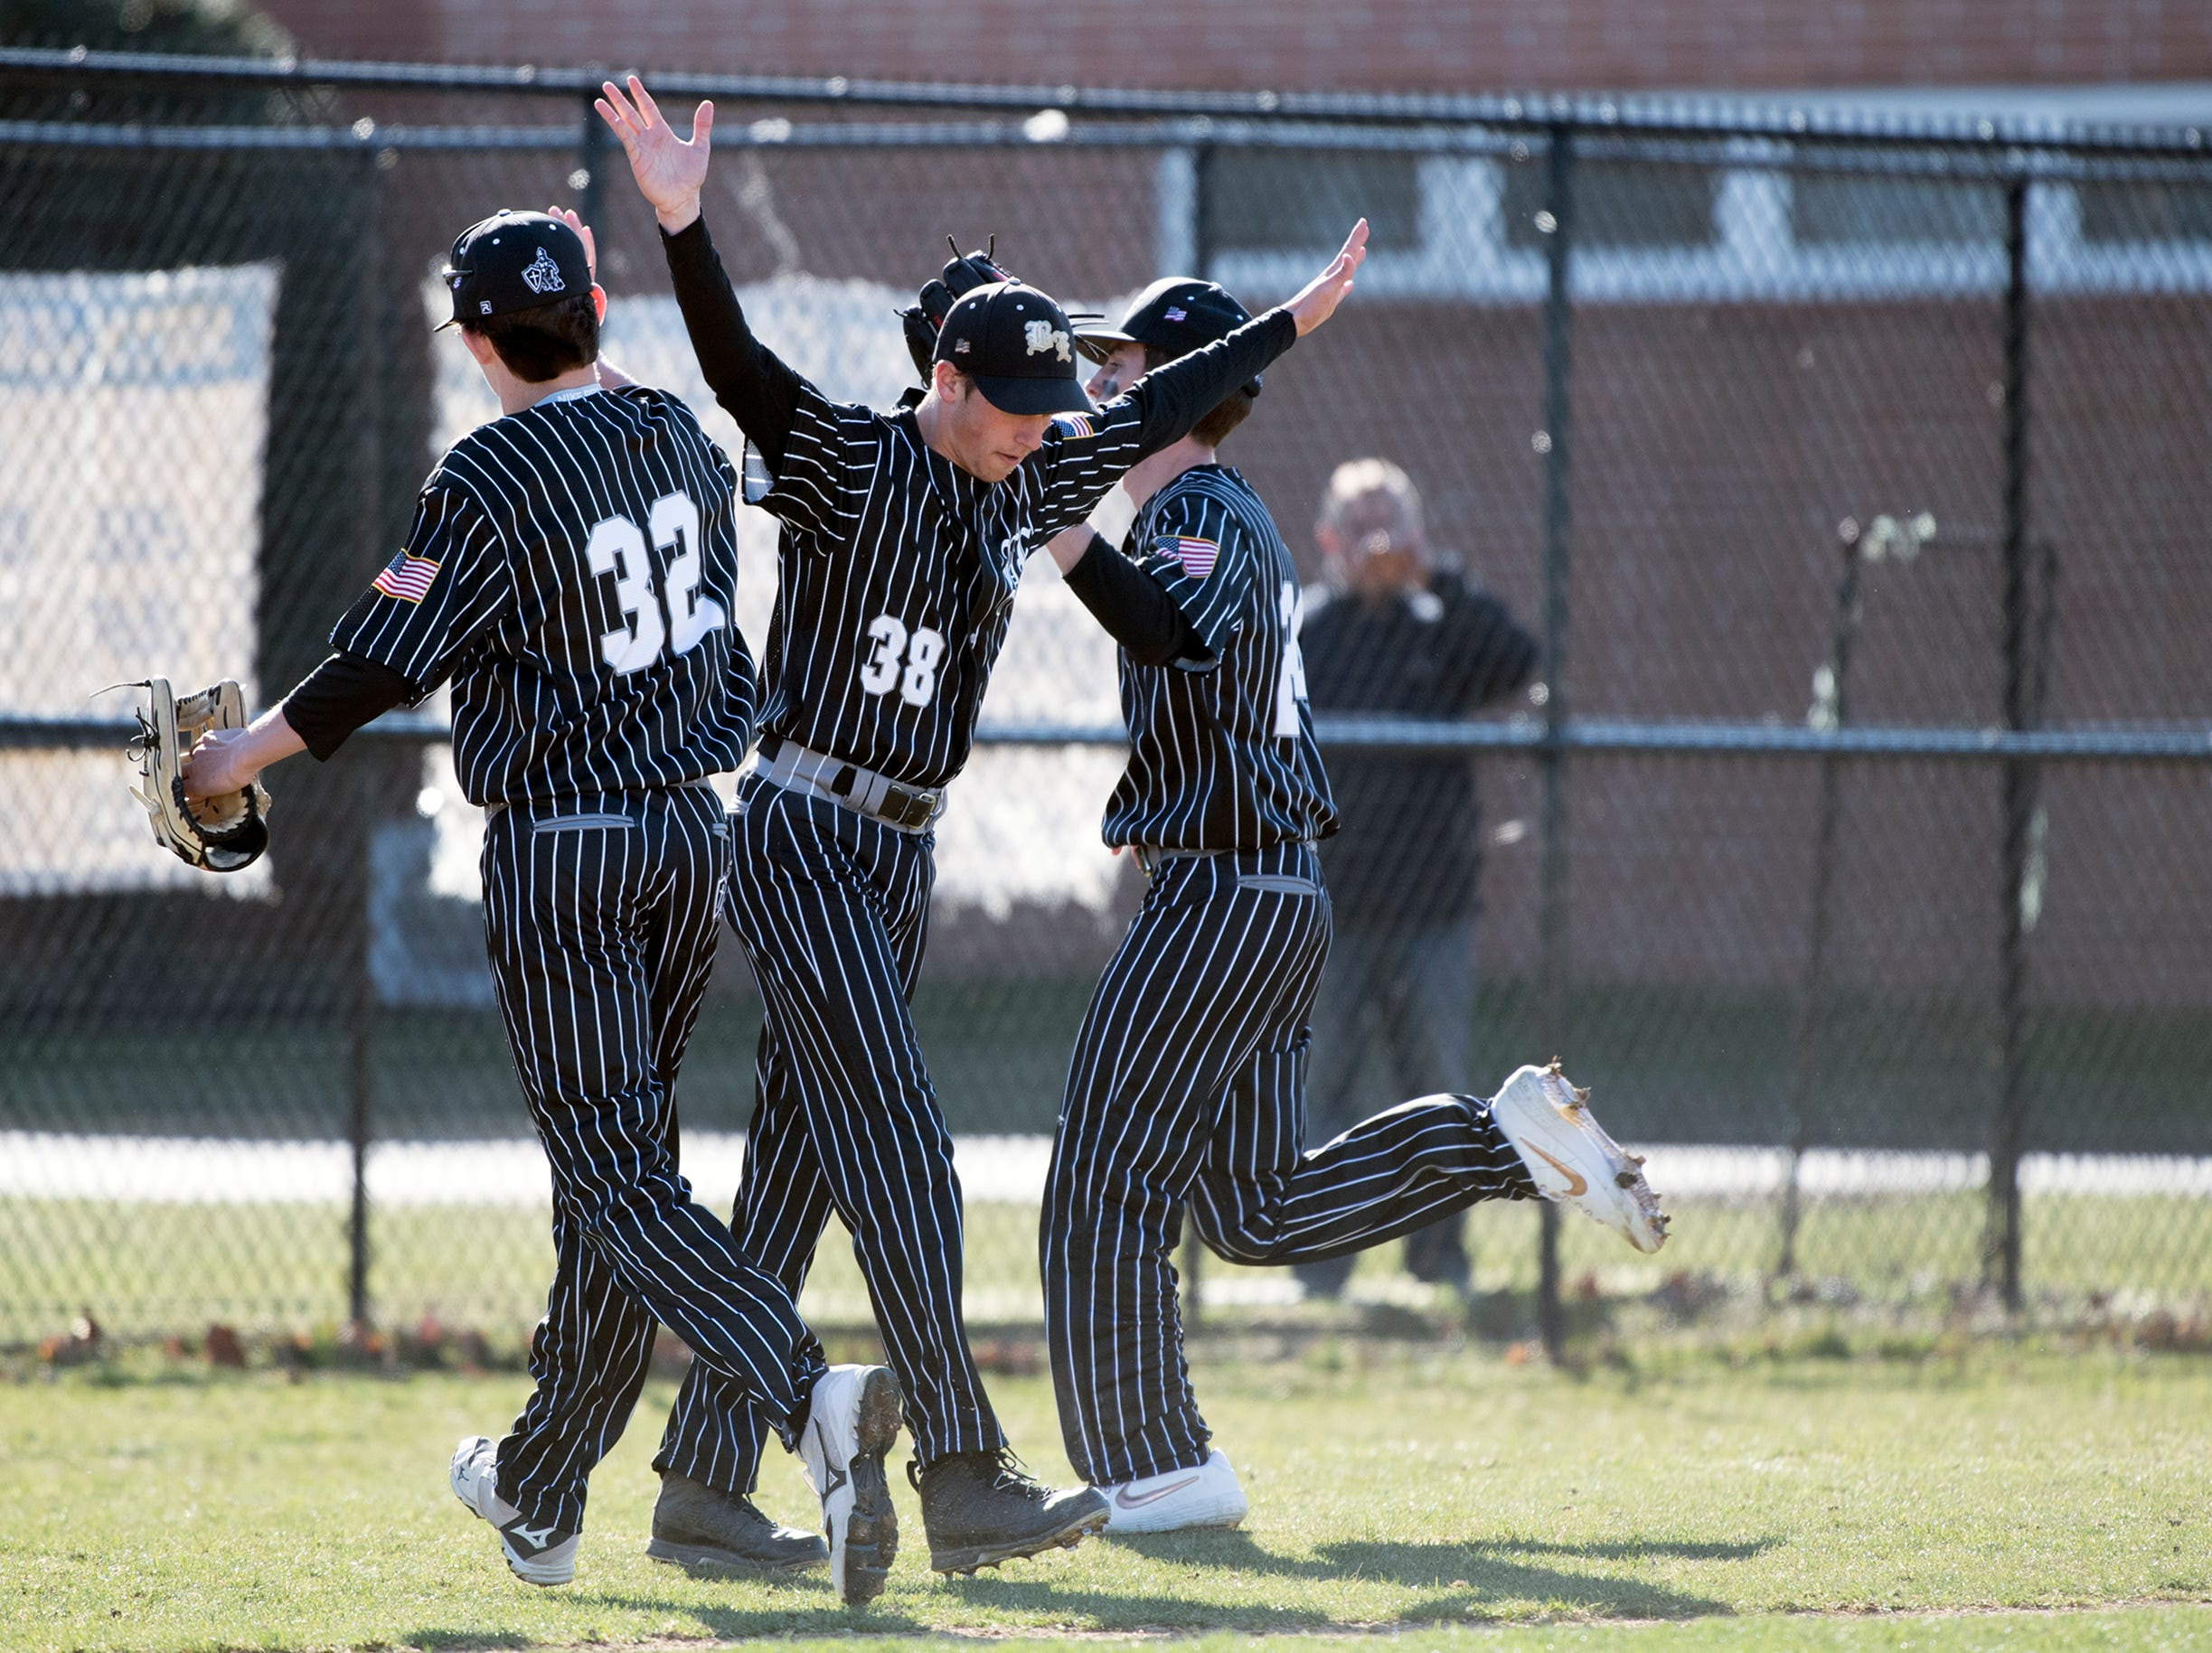 Bishop Eustace's Jake Argentieri (38) high fives teammates in between innings against Eastern Monday, April 1, 2019 in Pennsauken. Eustace won 12-0.